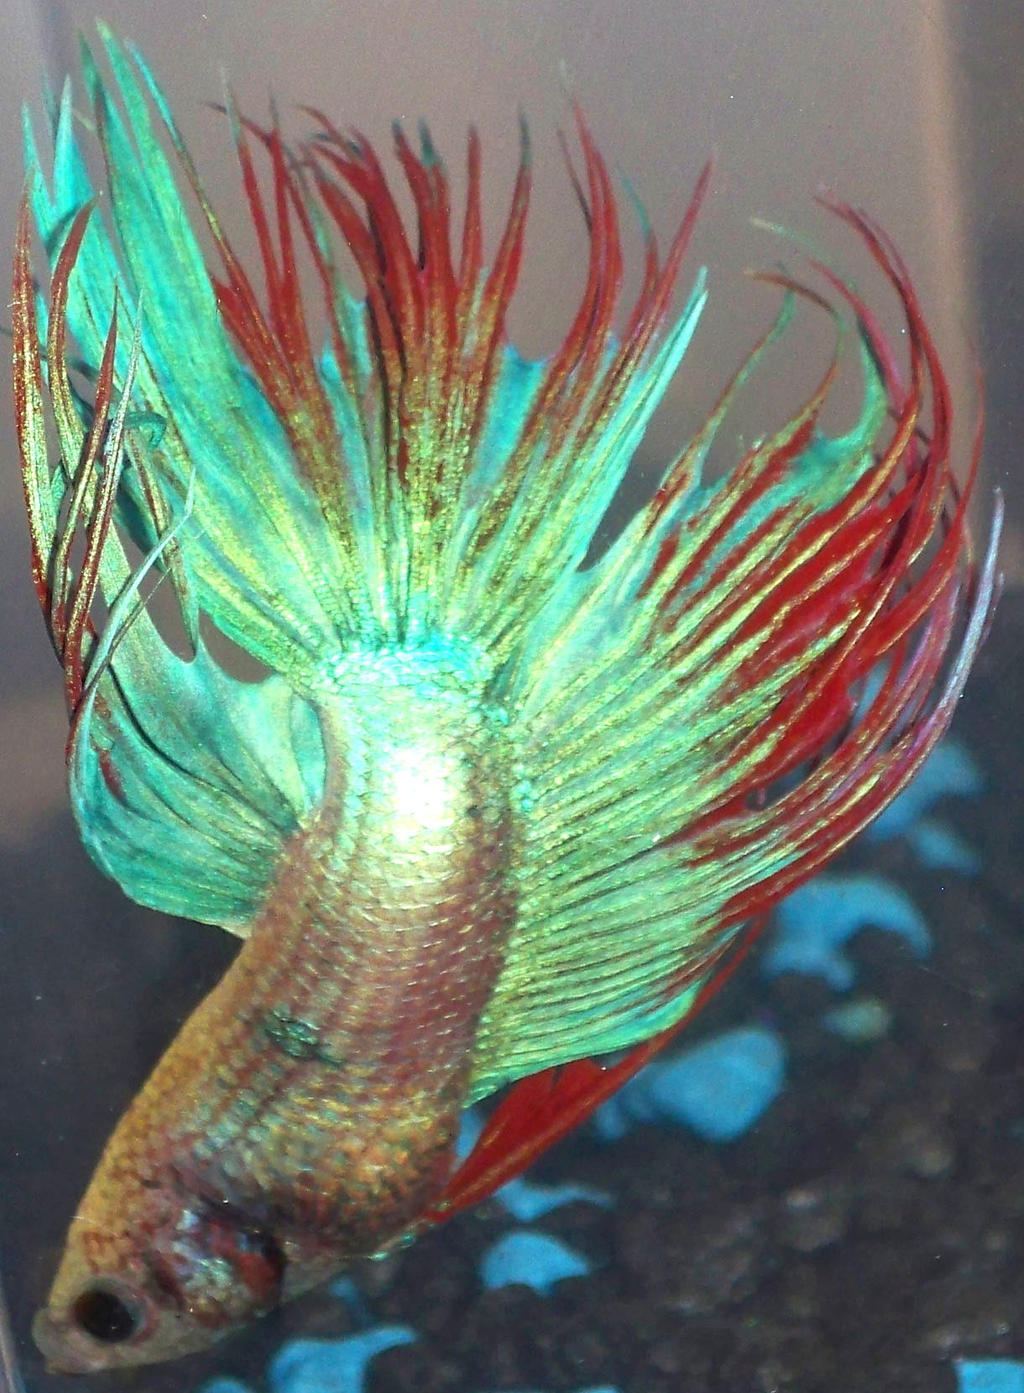 Crowntail betta 9 by pimppistol on deviantart for Crowntail betta fish